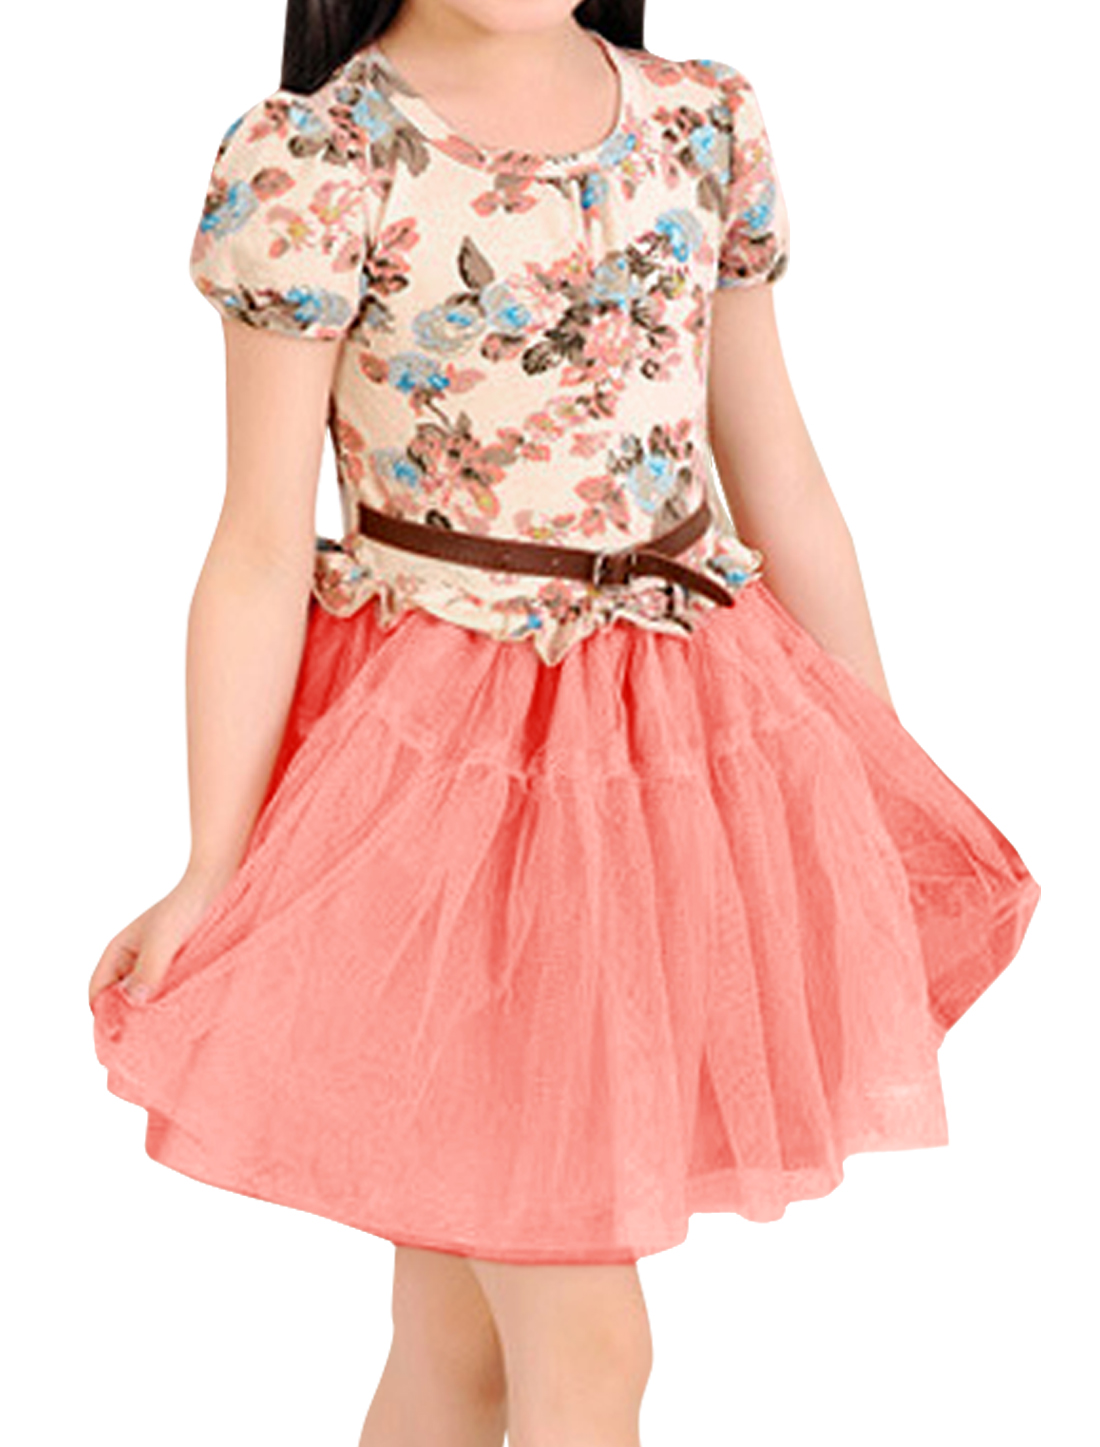 Girl NEW Floral Pattern Upper Tiered Mesh Covered Pink Dress 6